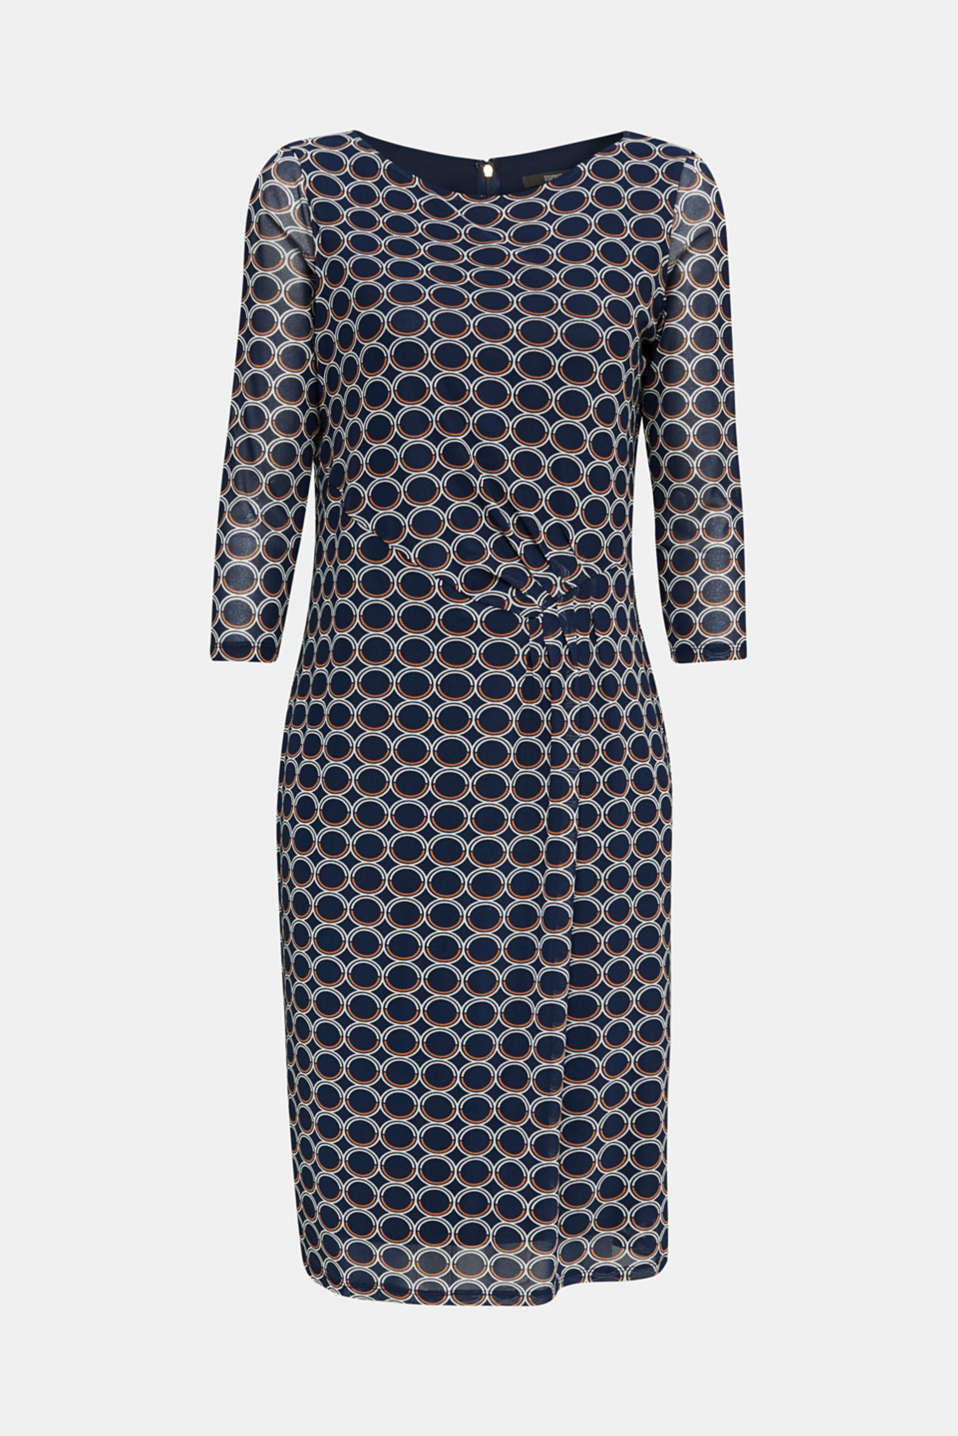 Mesh dress with a print, NAVY 3, detail image number 4